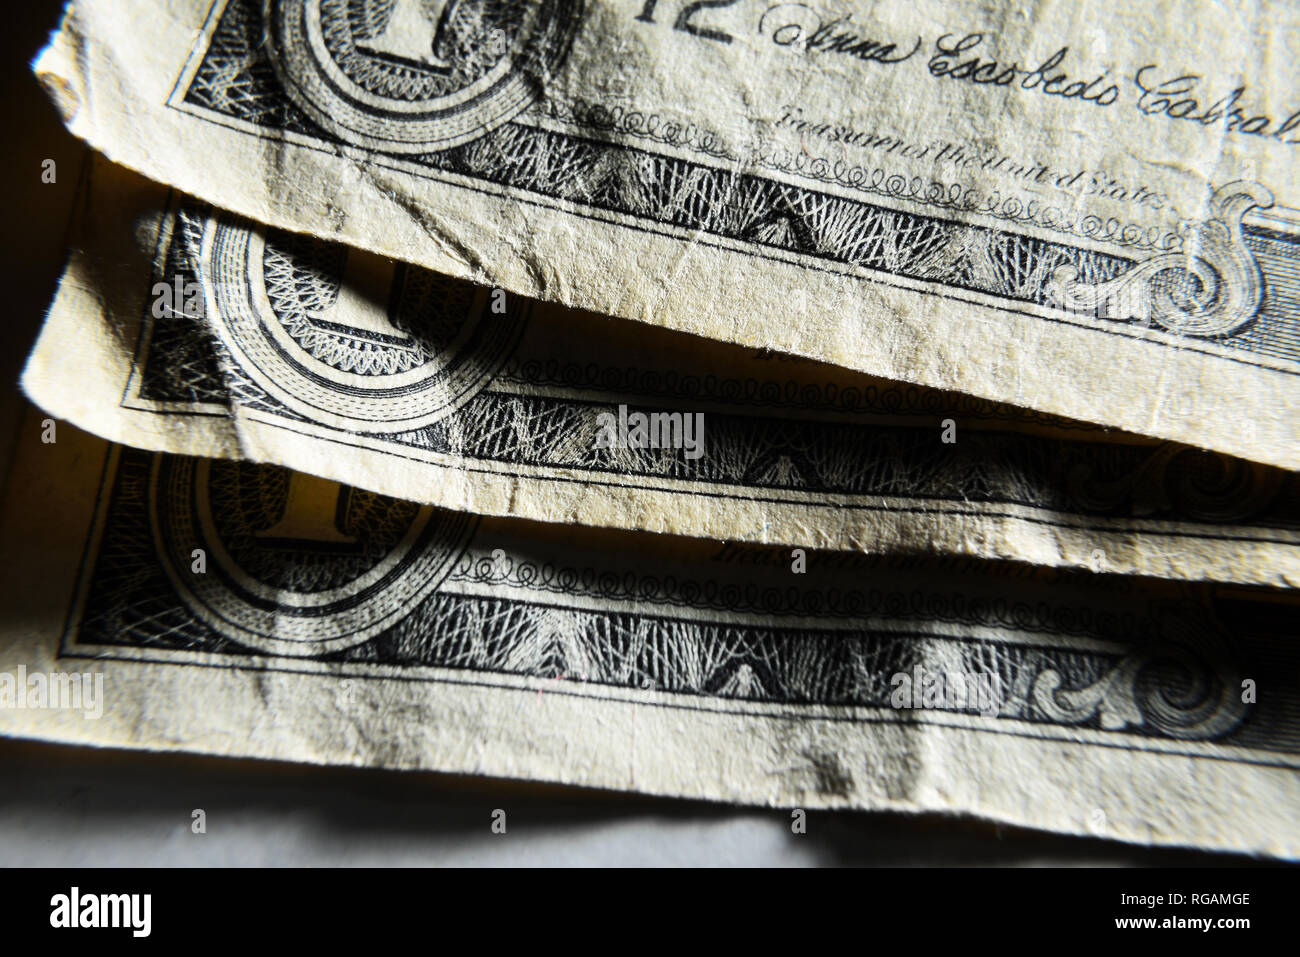 Dolar USA close-up. Old battered crumpled bills macro. The texture of the fragment of the dollar bill. USD banknote texture. Stock Photo